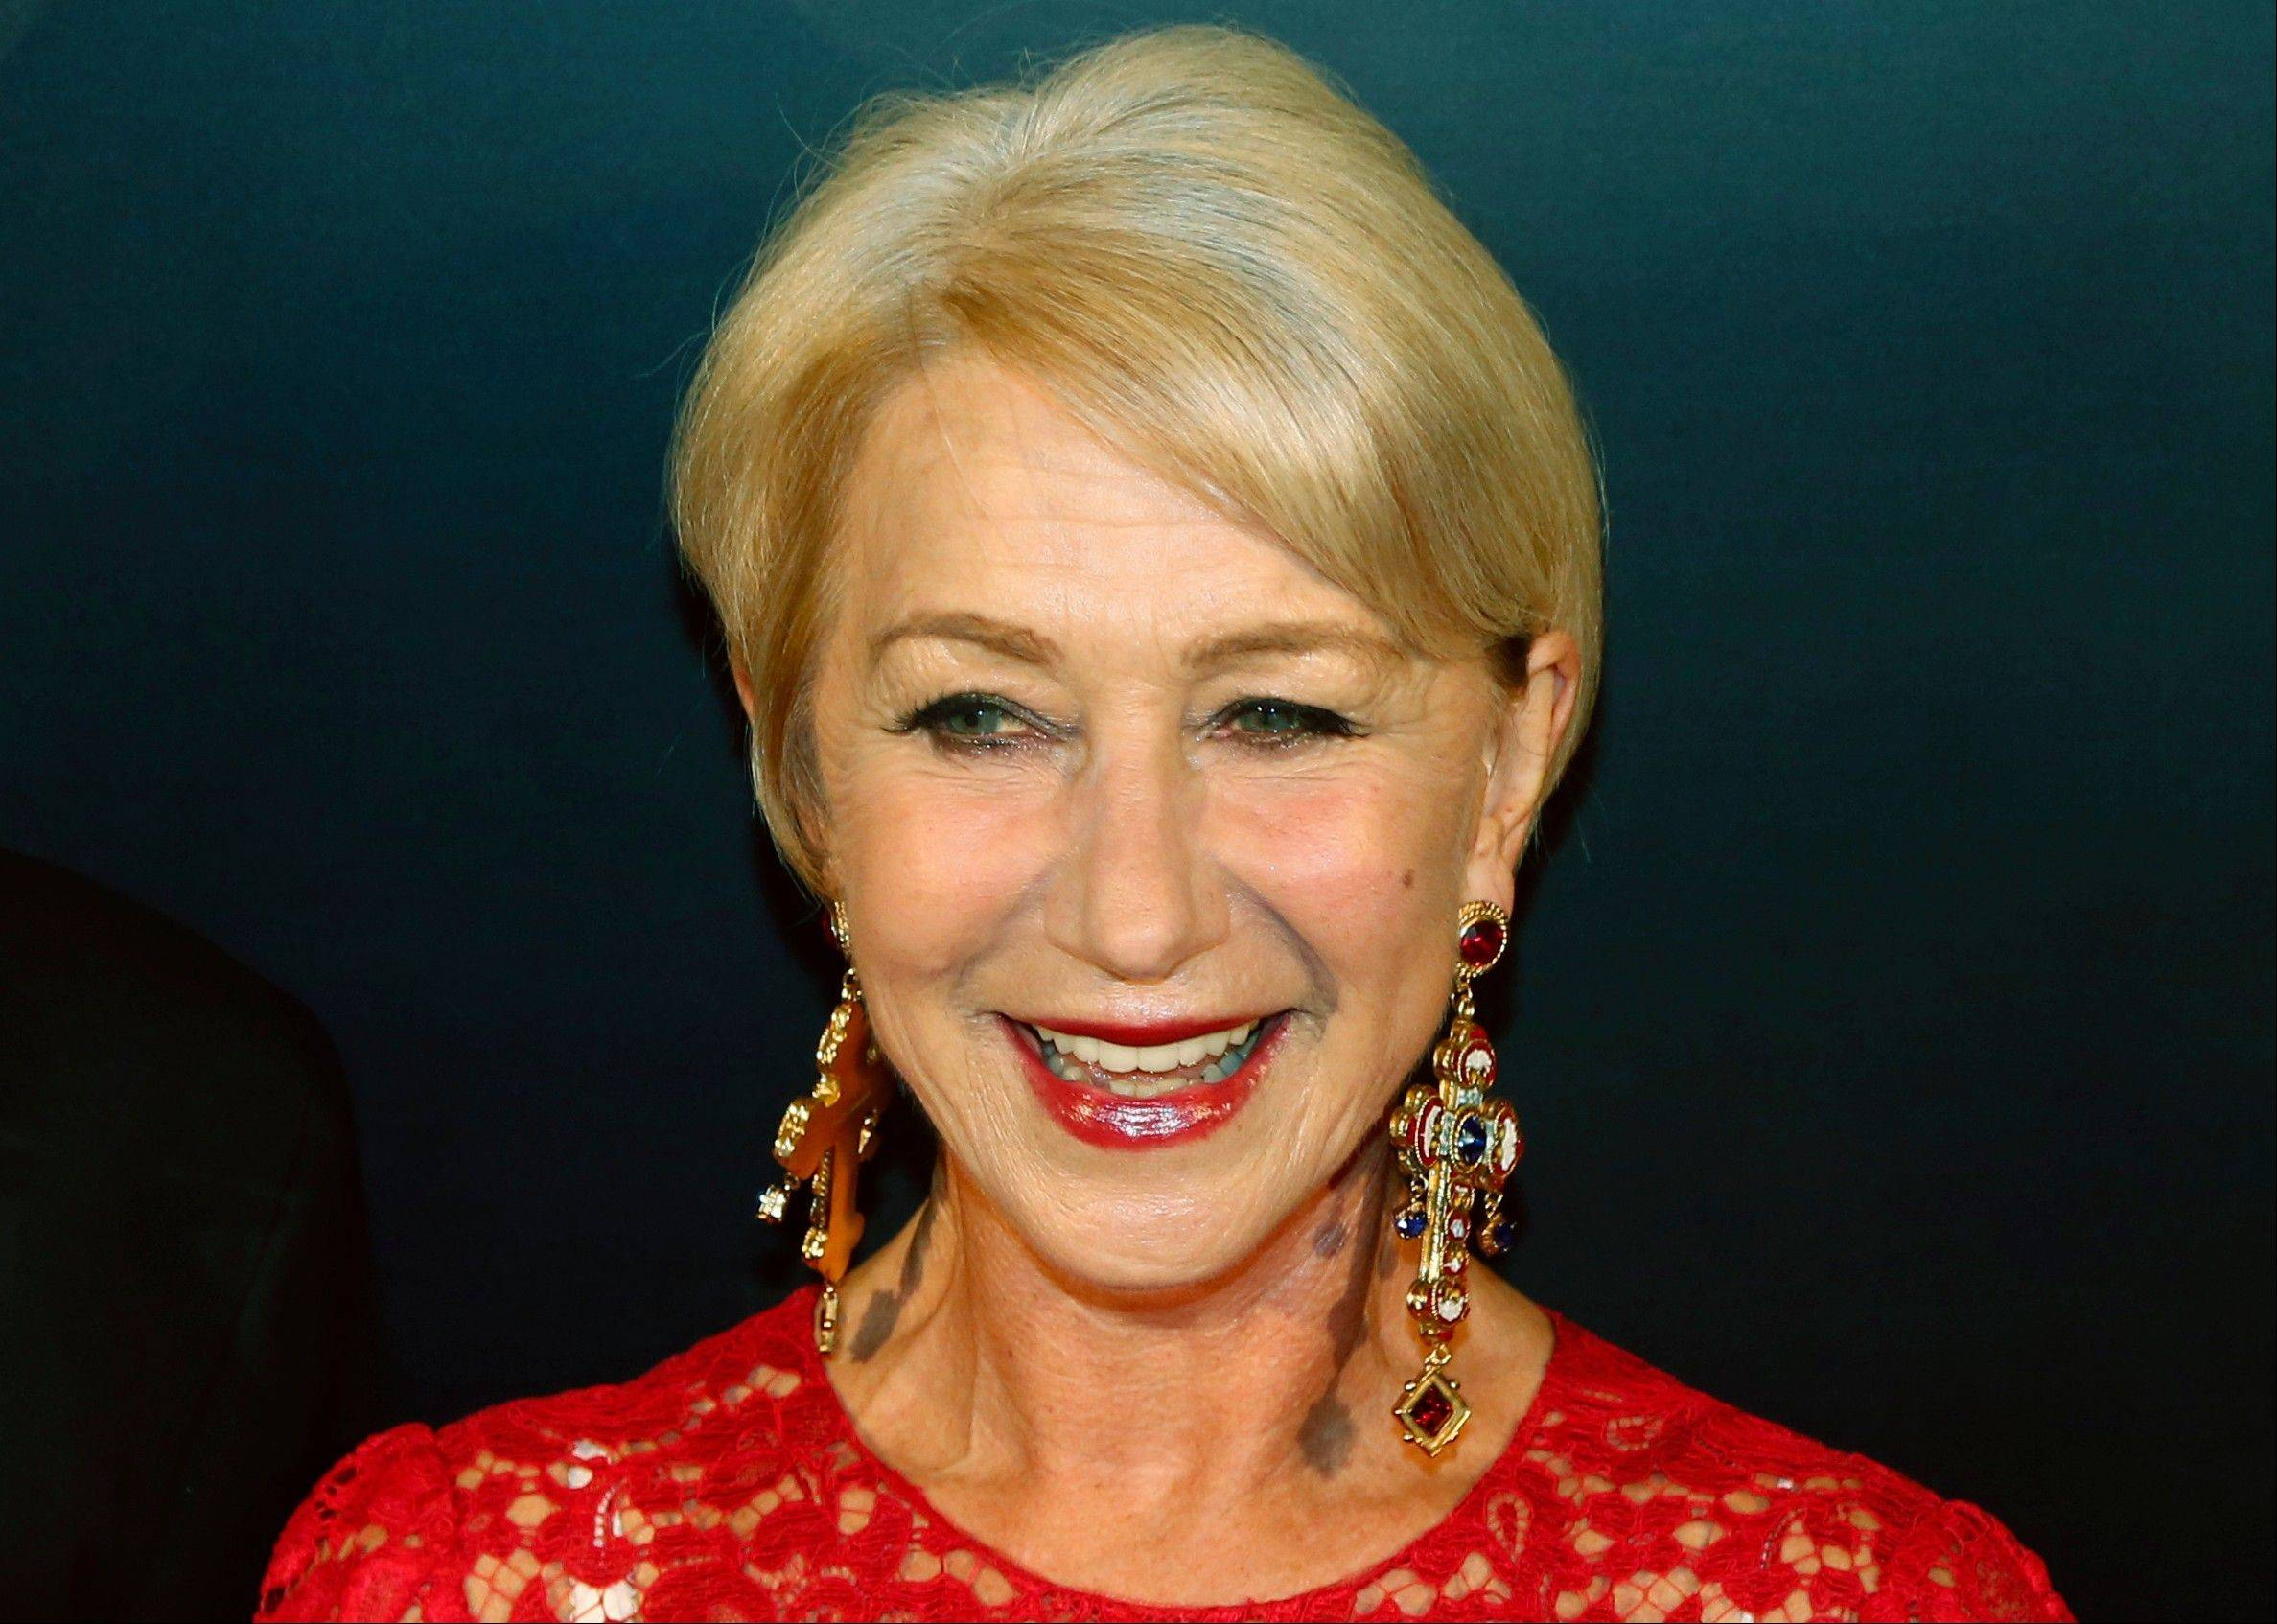 British actress Helen Mirren was named Friday, Jan. 17, 2014, as Harvard University�s Hasty Pudding Theatricals 2014 Woman of the Year.